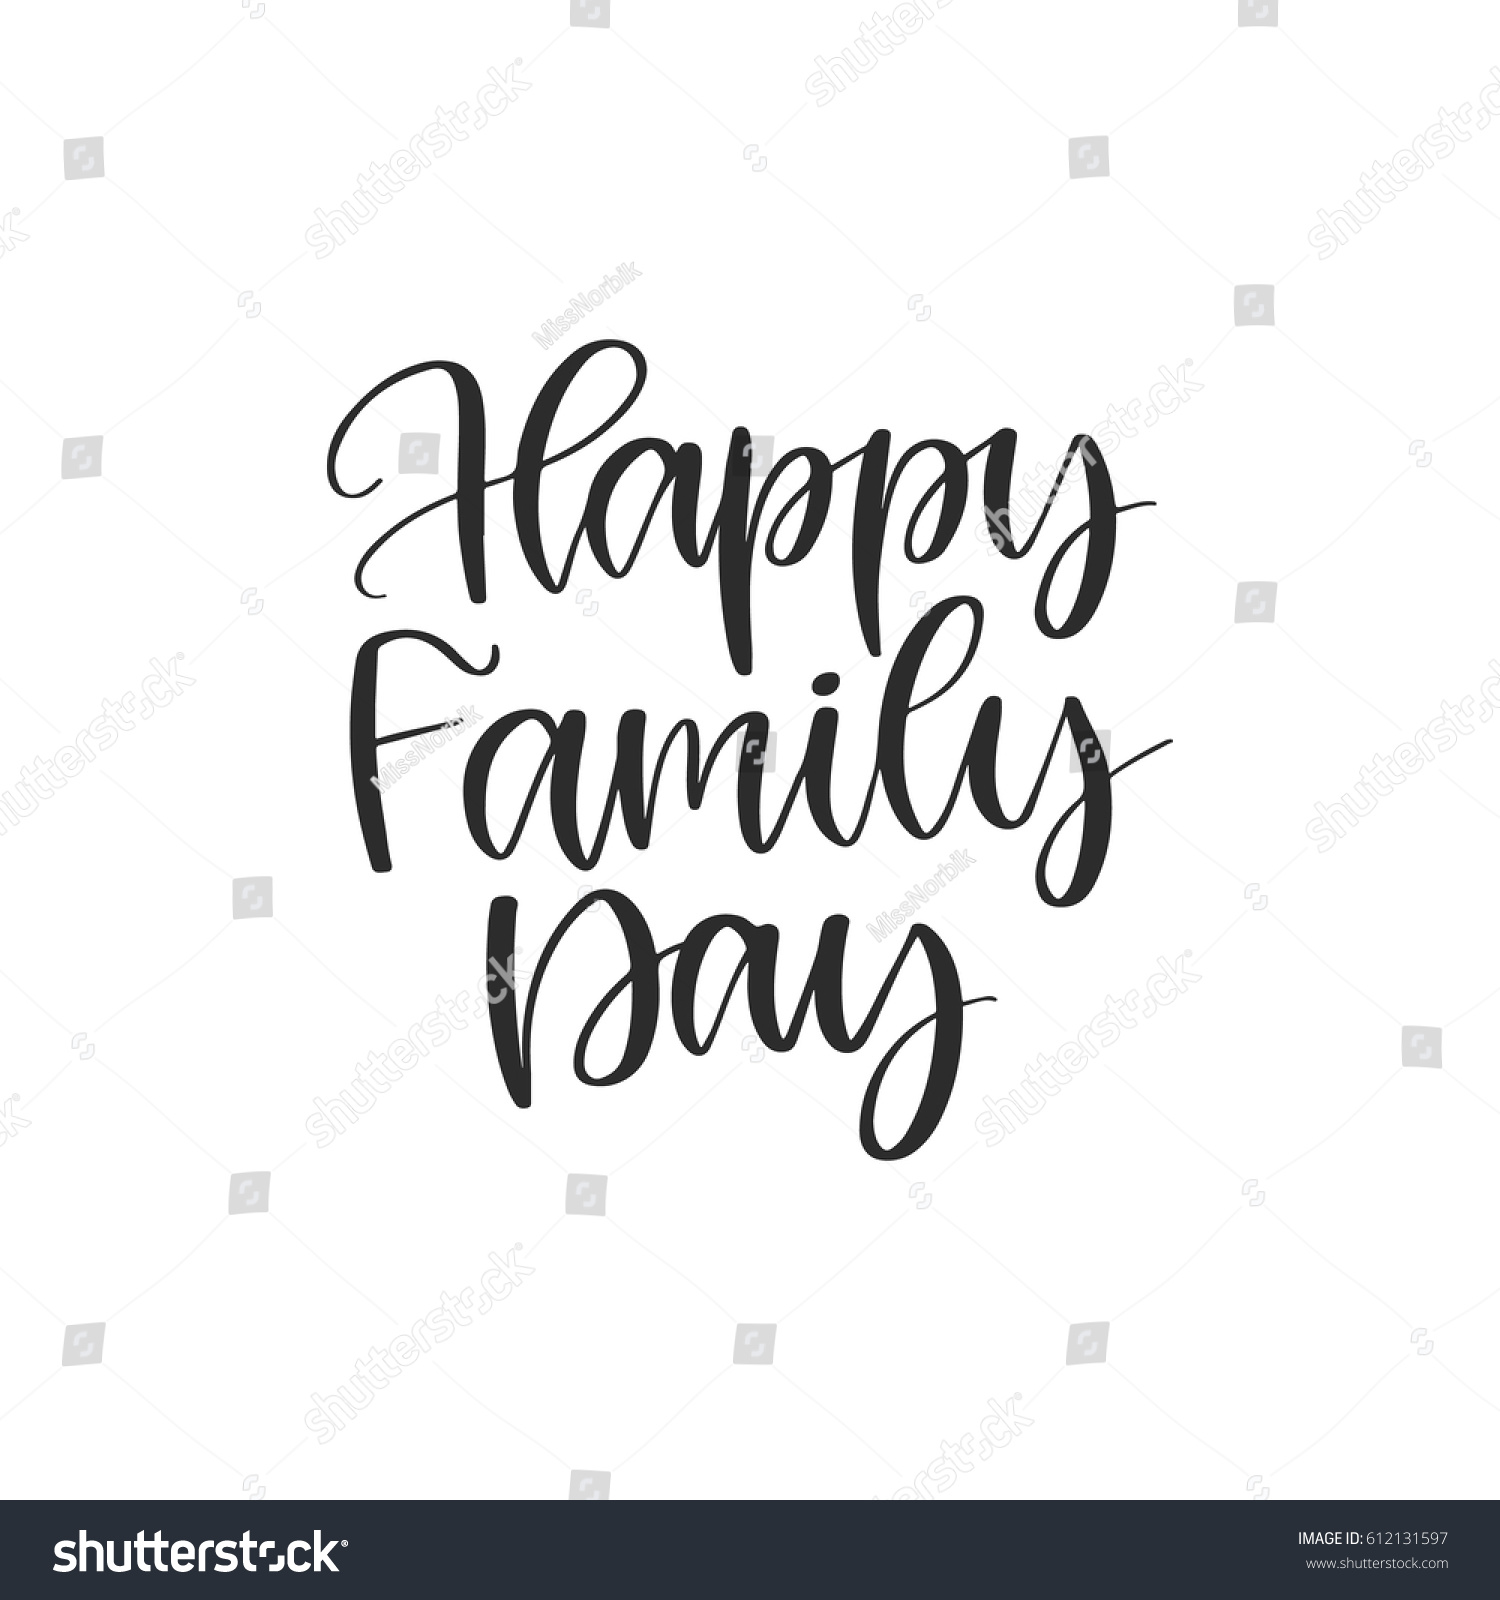 Image of: Motivational Quotes Vector Hand Drawn Motivational And Inspirational Quote Happy Family Day Calligraphic Poster Shutterstock Vector Hand Drawn Motivational Inspirational Quote Stock Vector